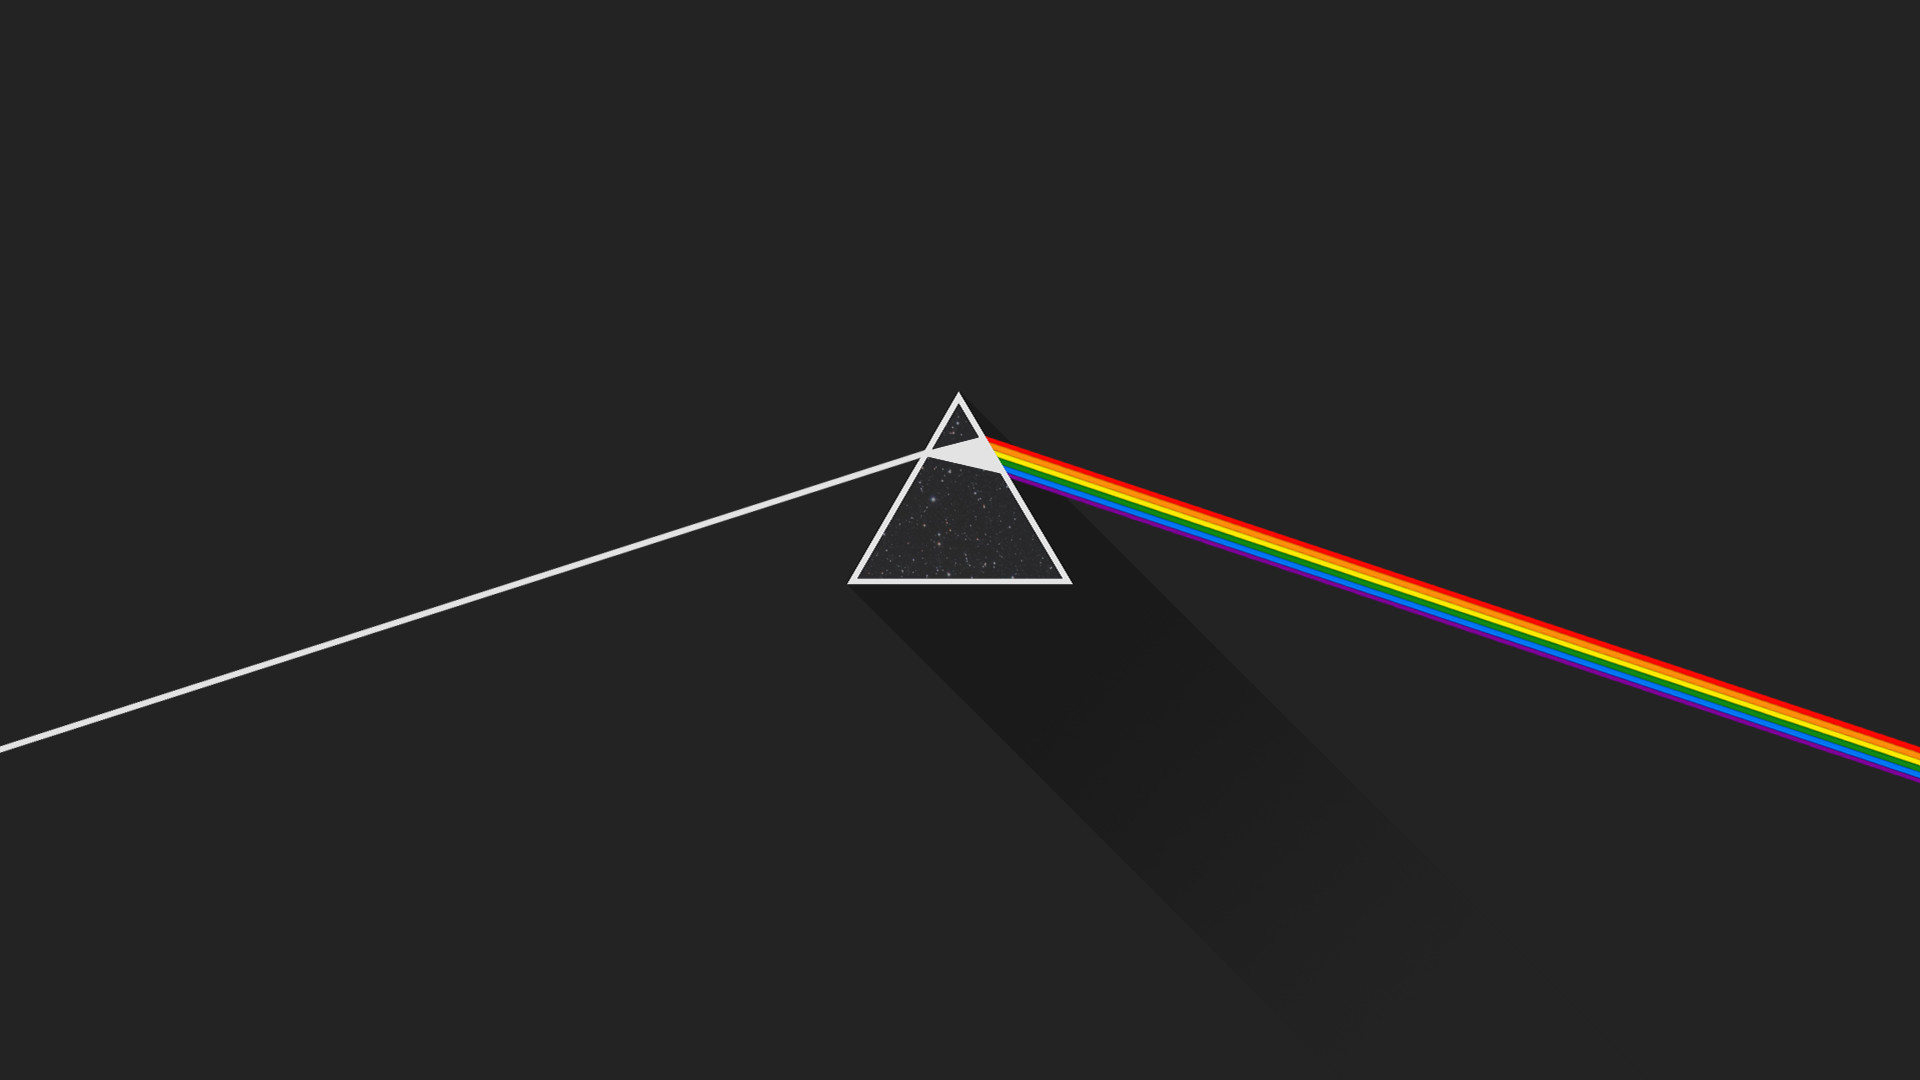 Pink Floyd Wallpaper For Android Posted By Zoey Johnson